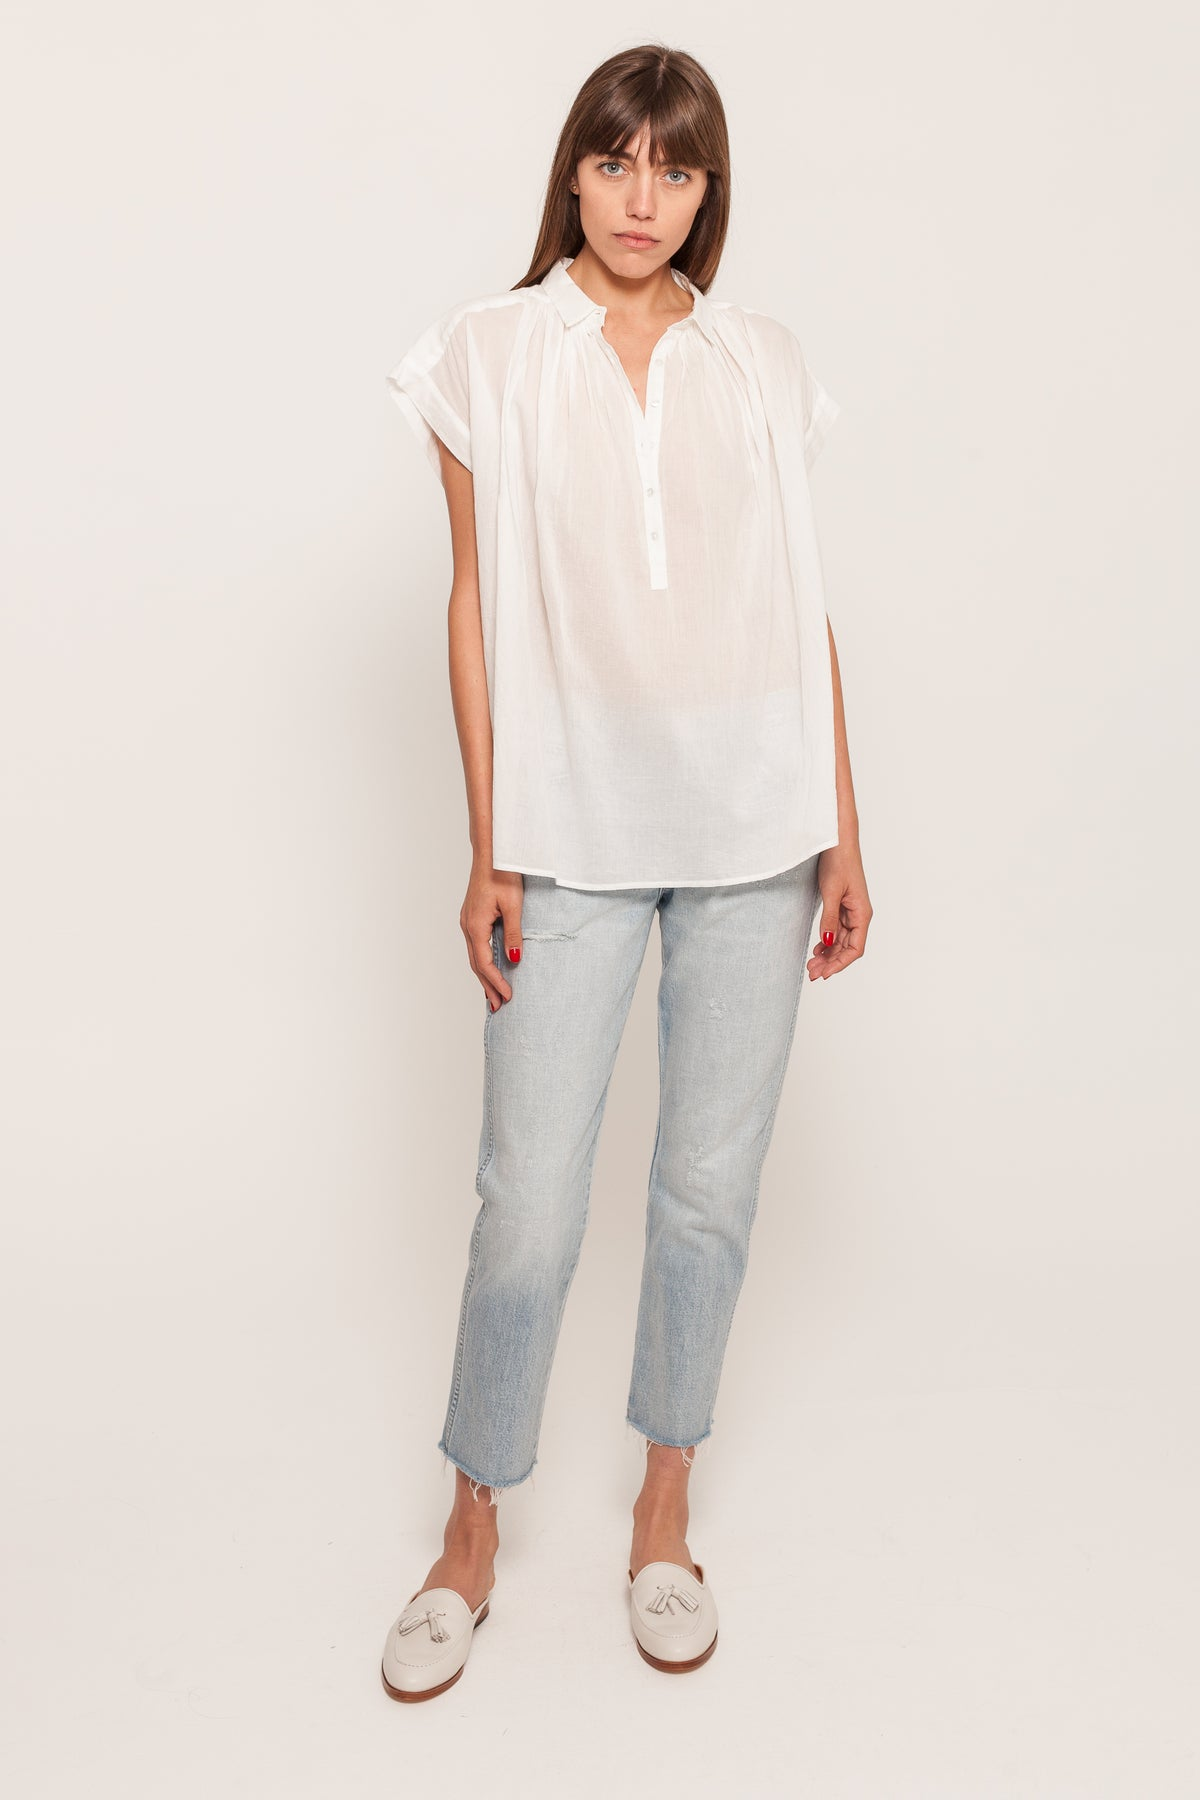 NILI LOTANNORMANDY BLOUSE4293